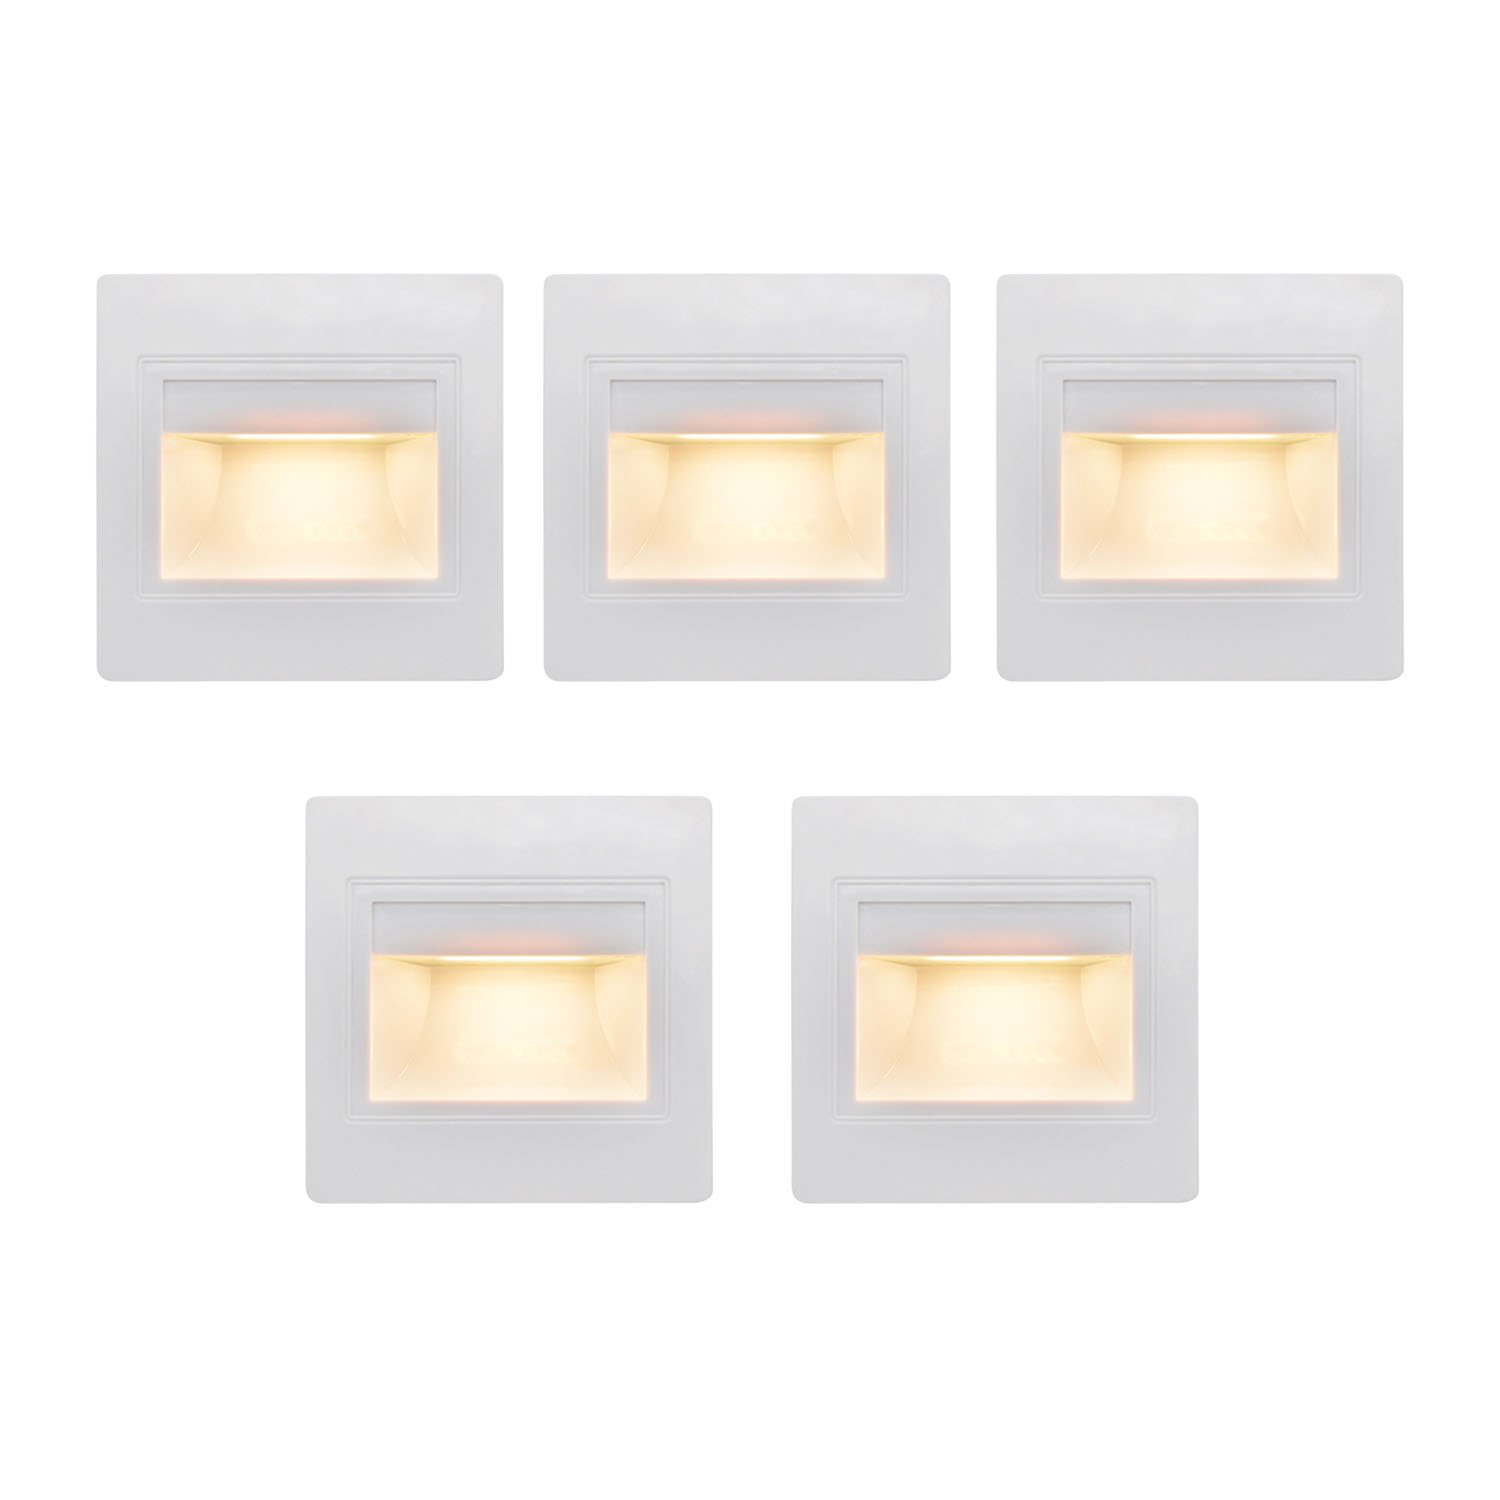 (5 Pack) LED Indoor Step Light, LED Recessed Mini Stair Light, Corner Wall Lamp Night Lighting Fixture, 2.5W 3200K (Warm White)